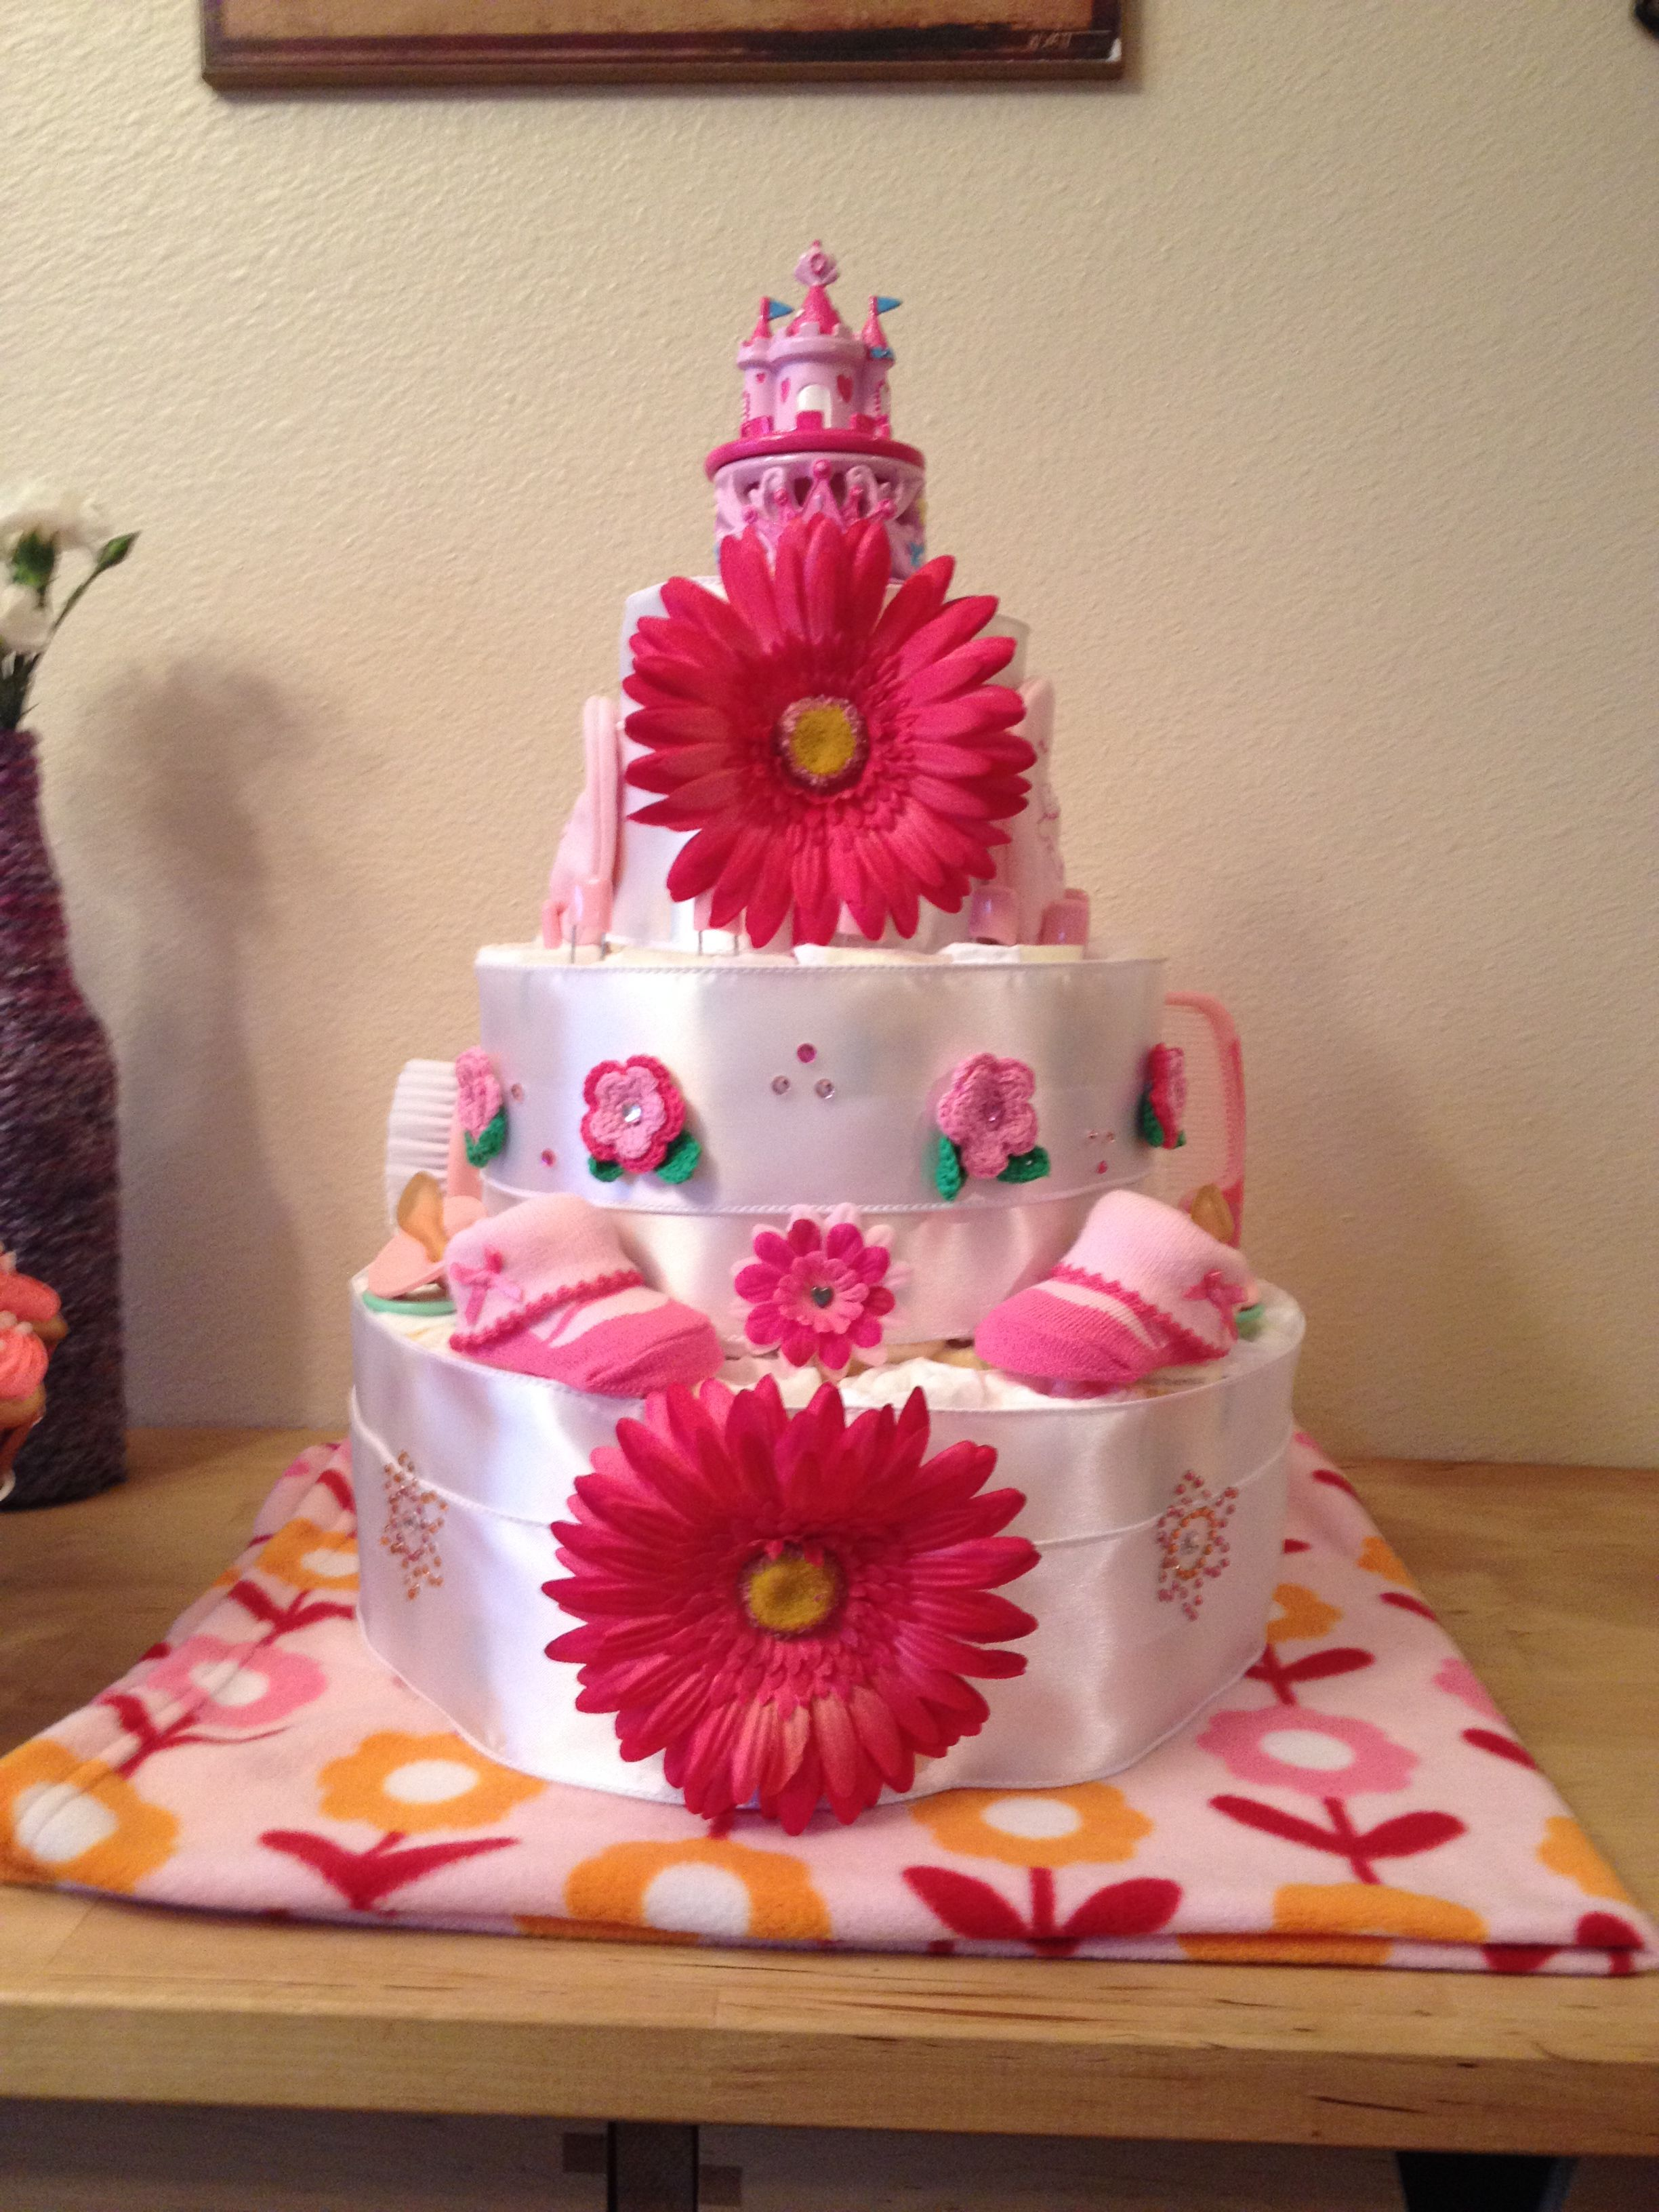 My signature baby shower gift is a personalized diaper cake.